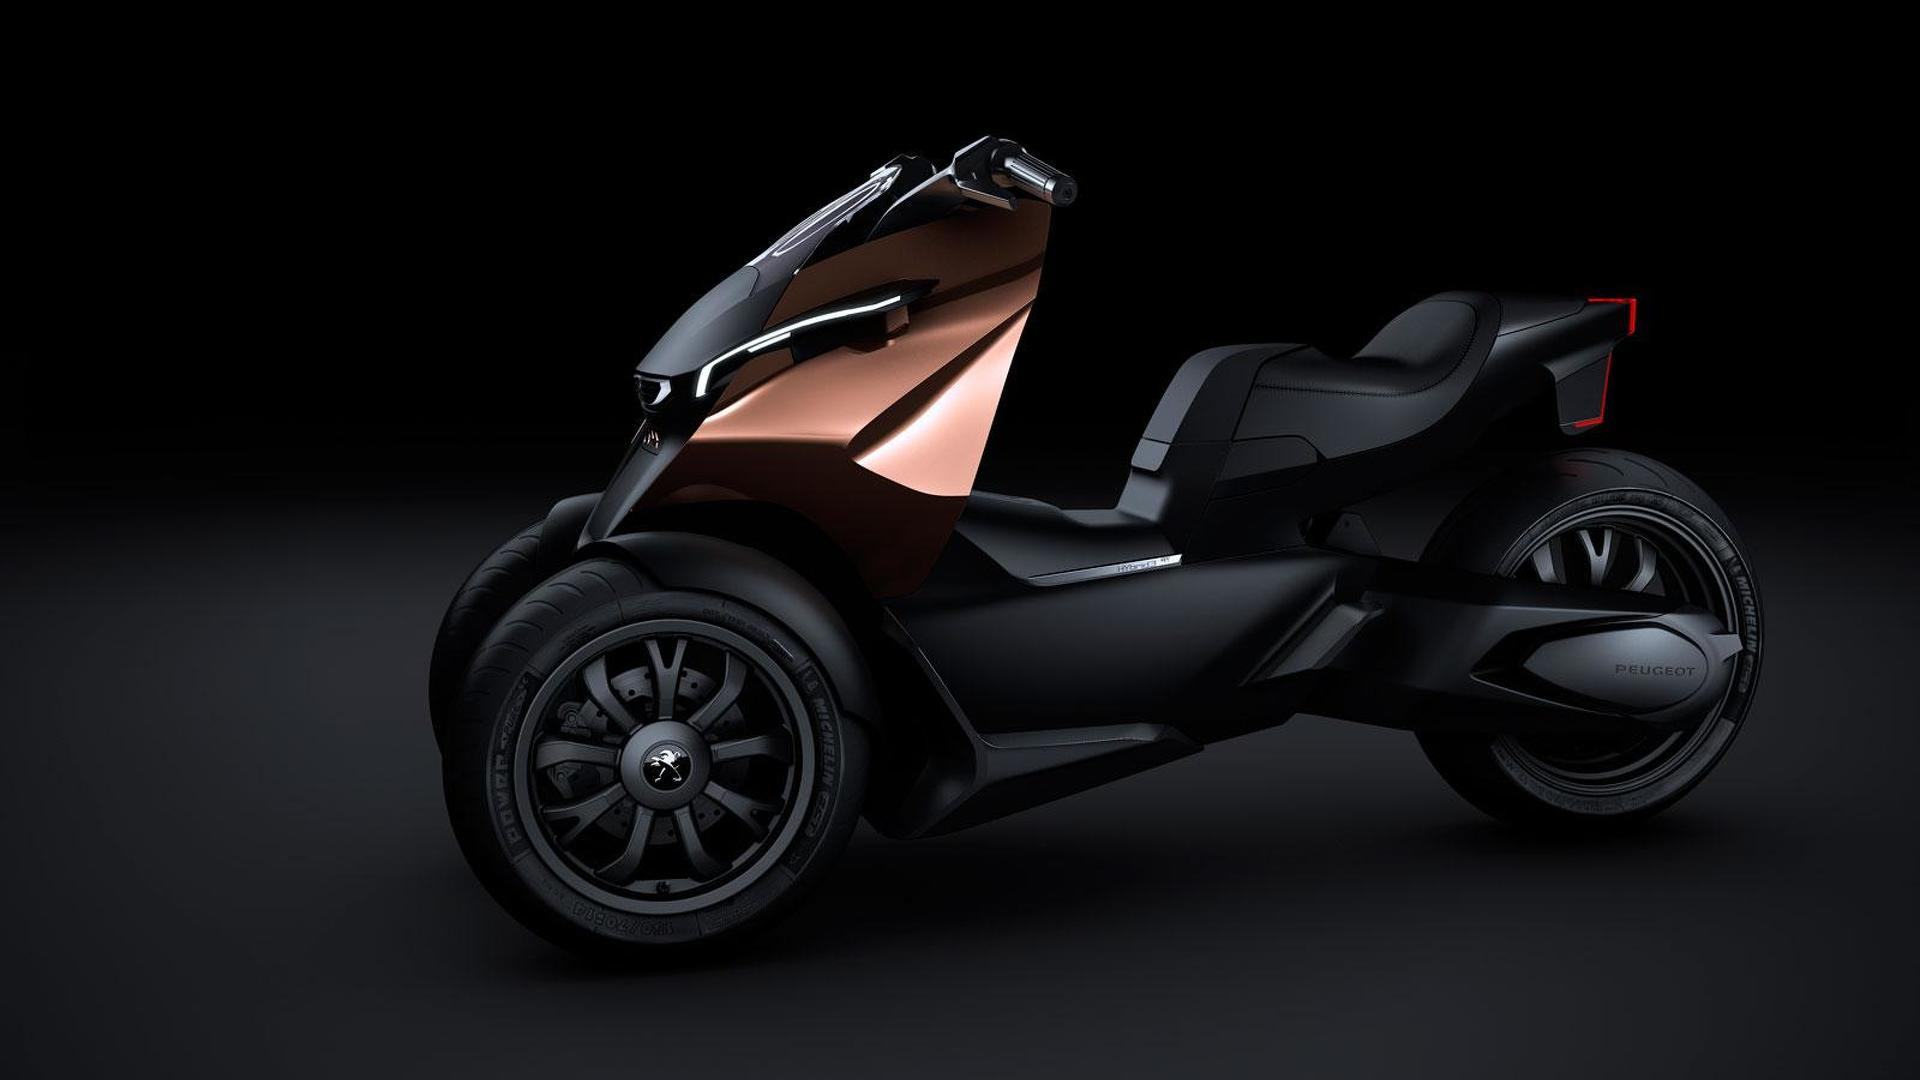 Peugeot Onyx Concept Scooter to debut in Paris